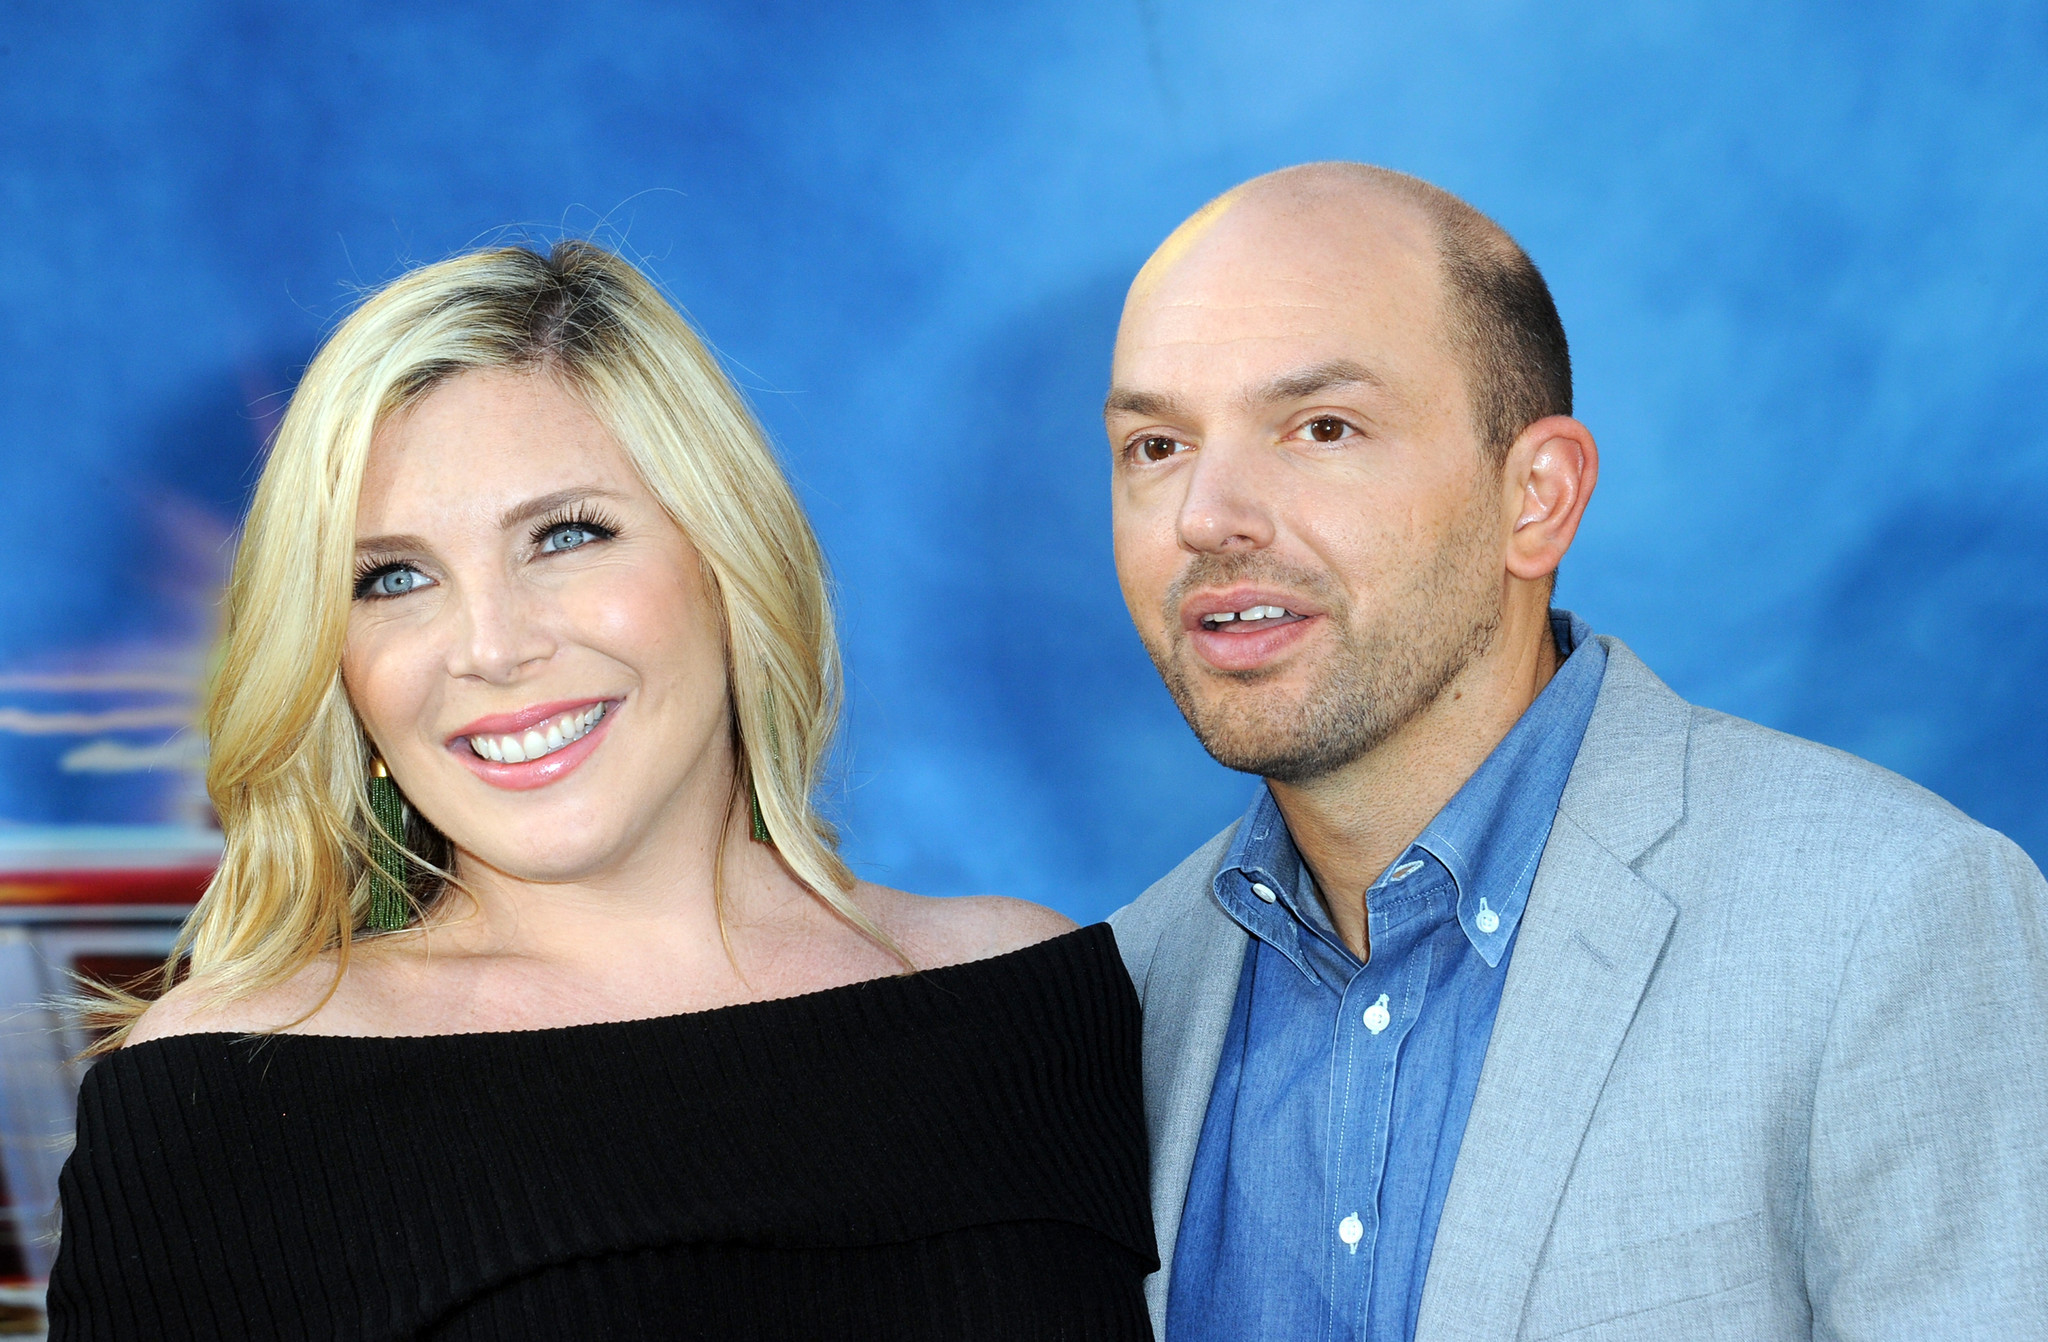 """June Diane Raphael and Paul Scheer at the premiere for """"Ghostbusters"""" at TCL Chinese Theatre on July 9, 2016."""